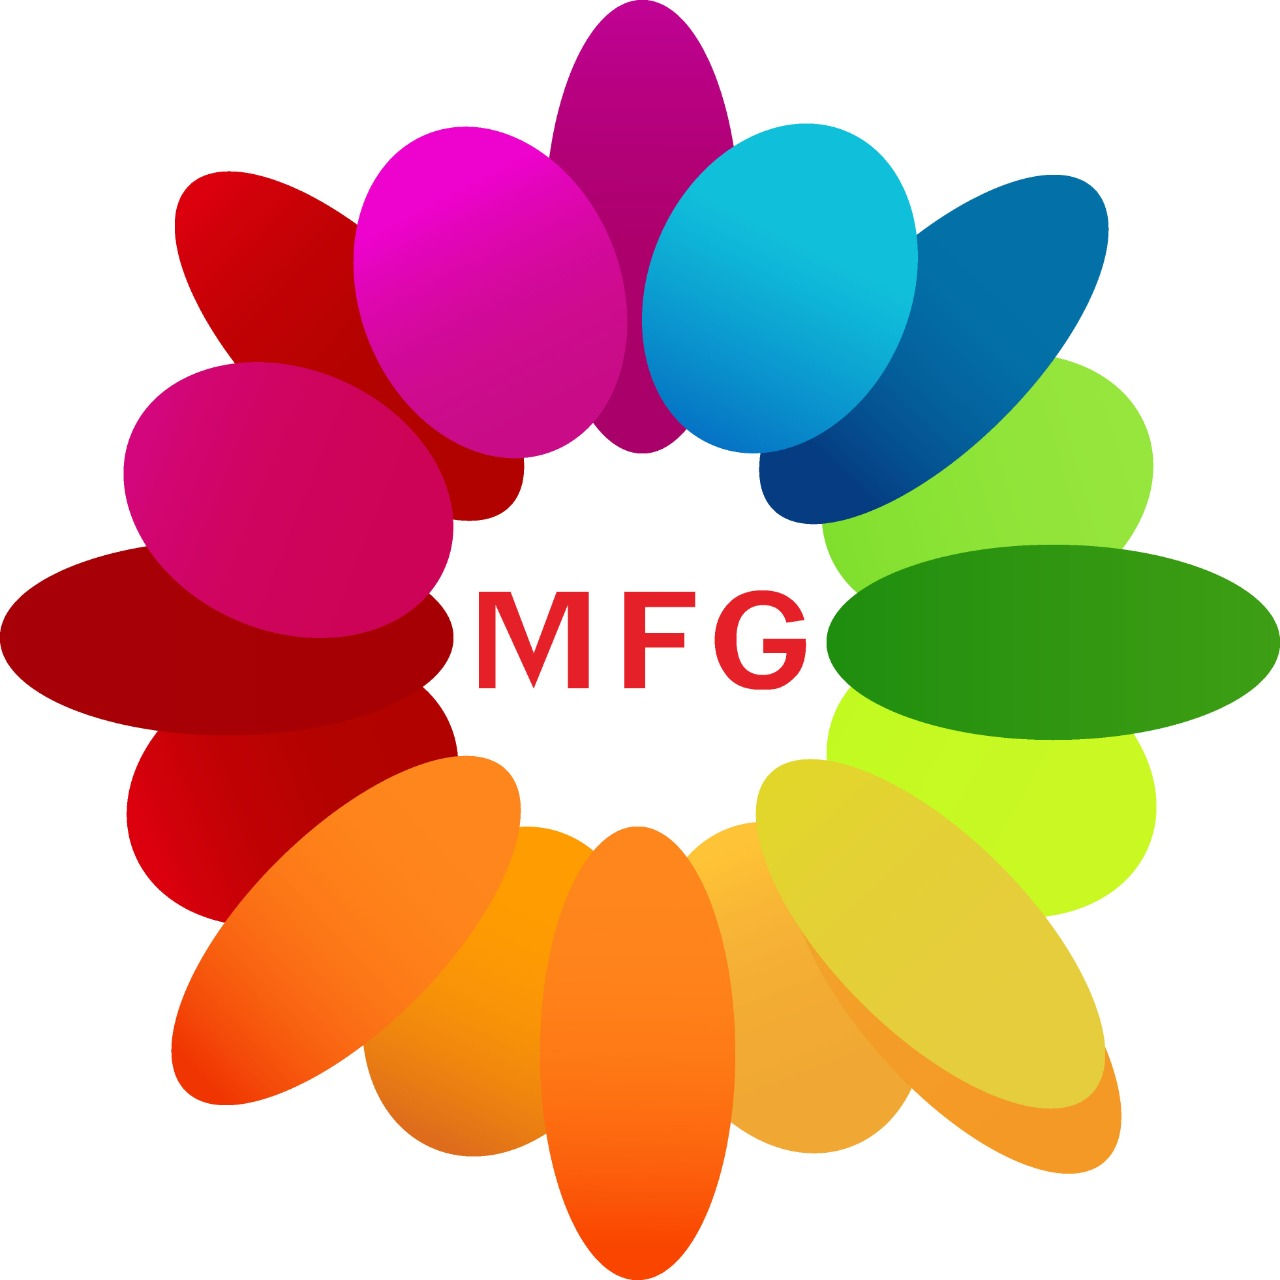 1 Kg Haldi Ram Soan Papdi With Santa Clause Toy and Christmas Greeting Card